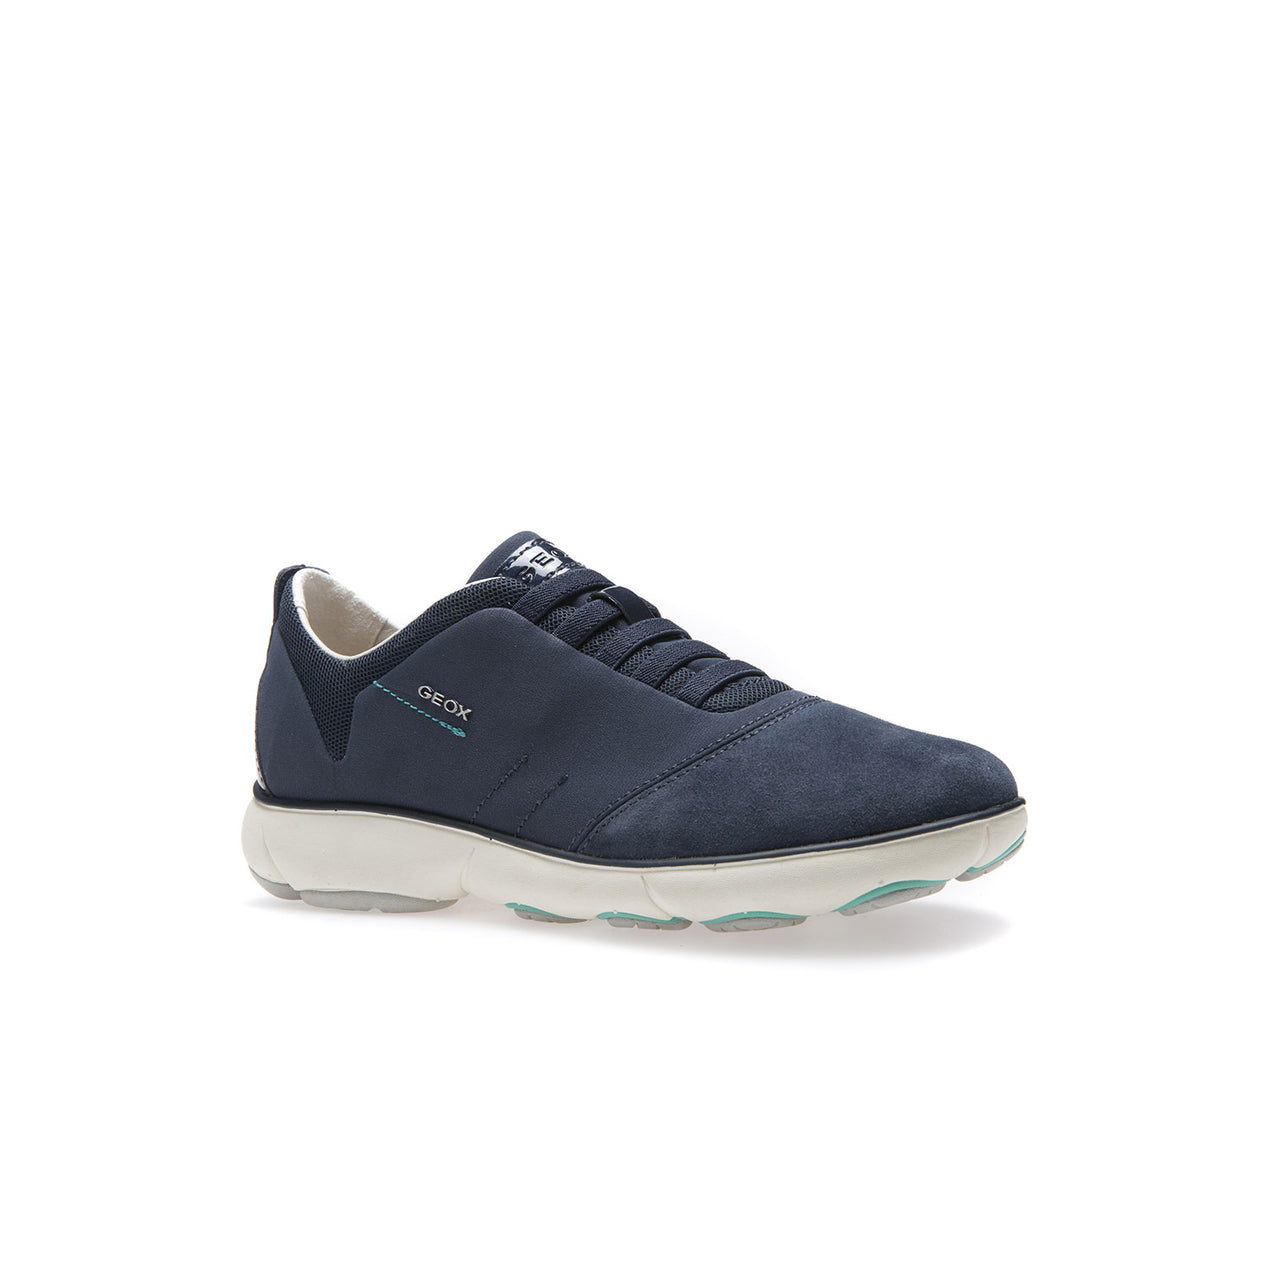 659fed05c8d17 Geox Chaussures Sport Nebula Homme